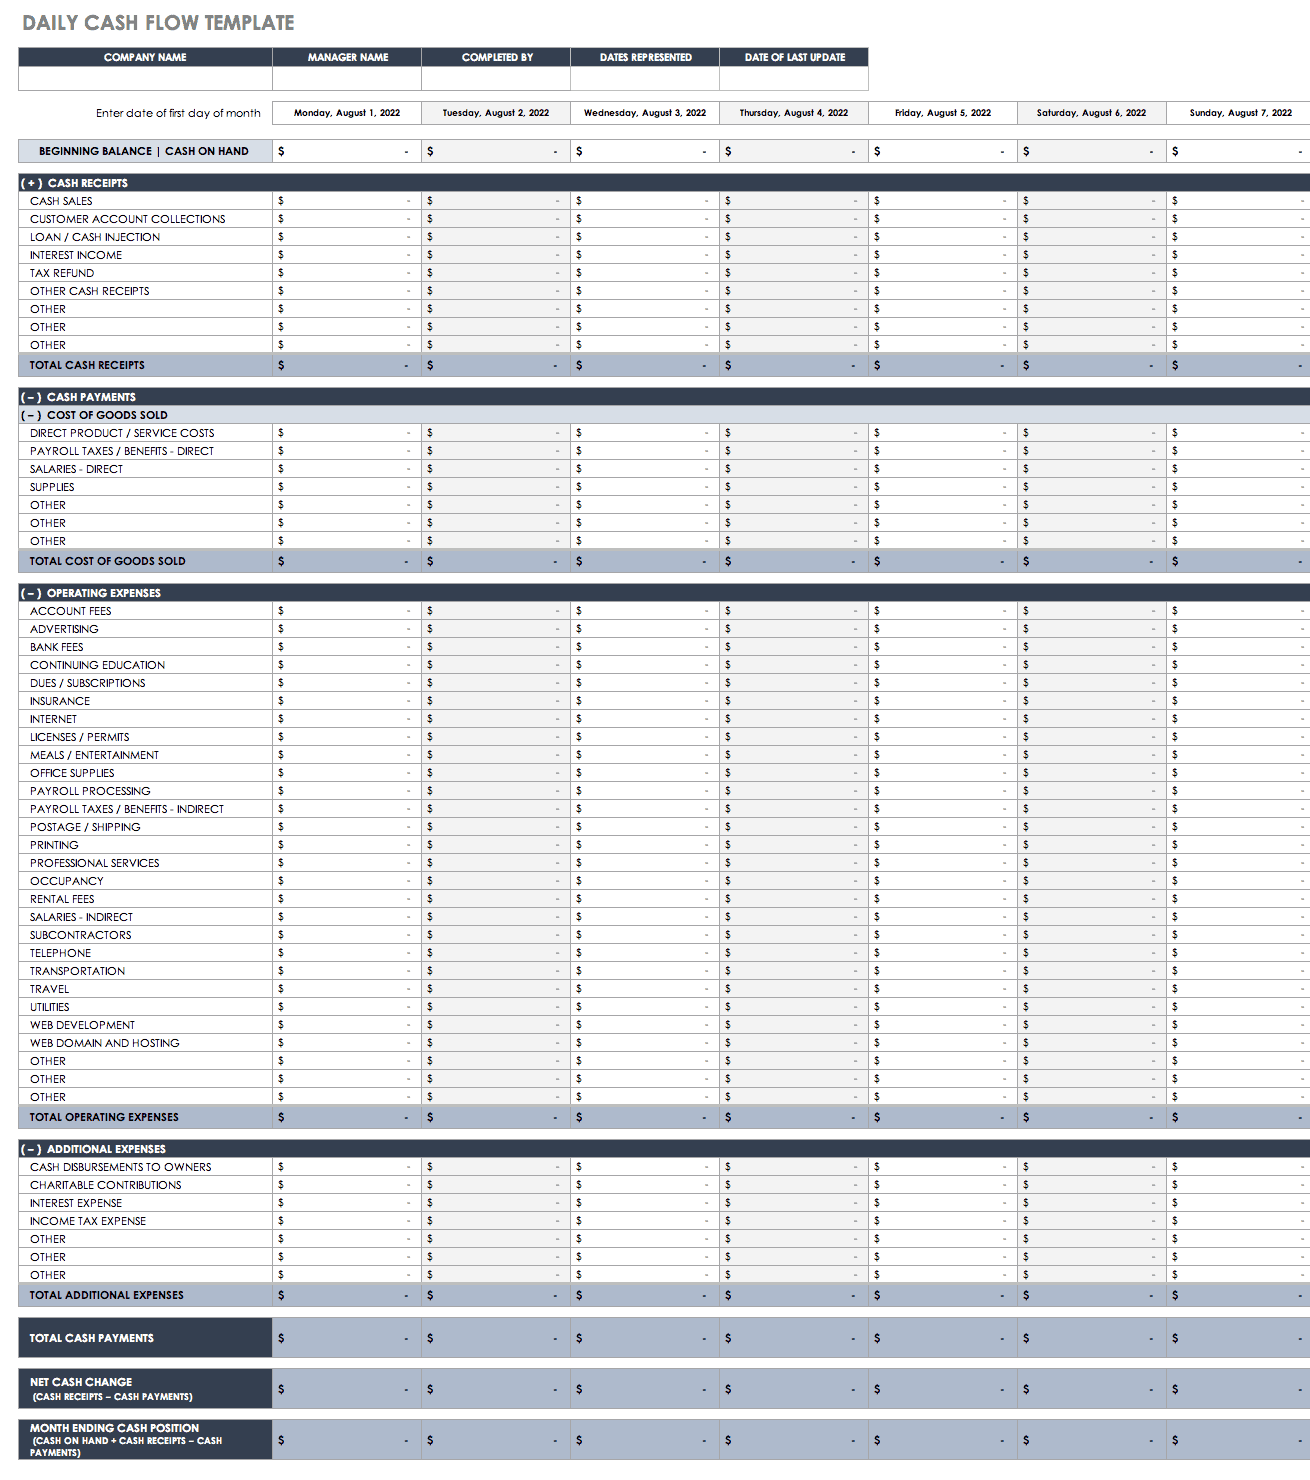 Bank Reconciliation Excel Template from www.smartsheet.com